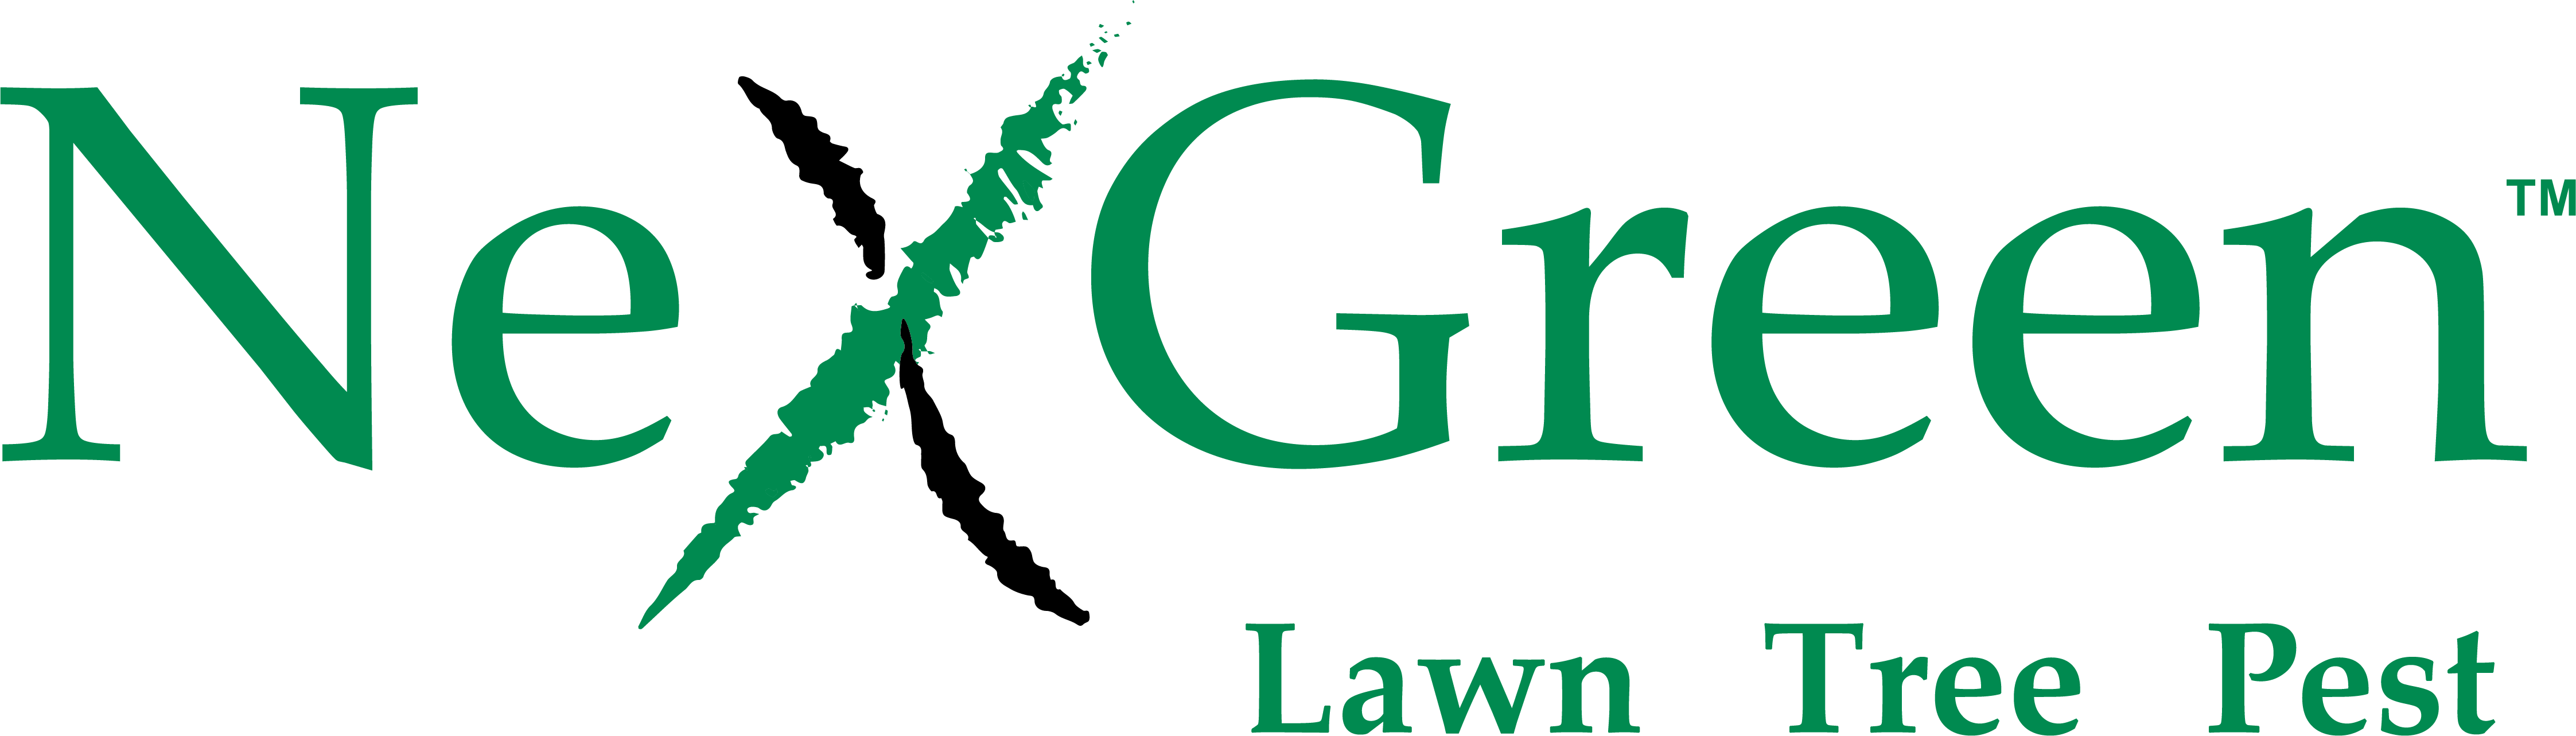 Nexgreen Lawn Fertilizer And Weed Control